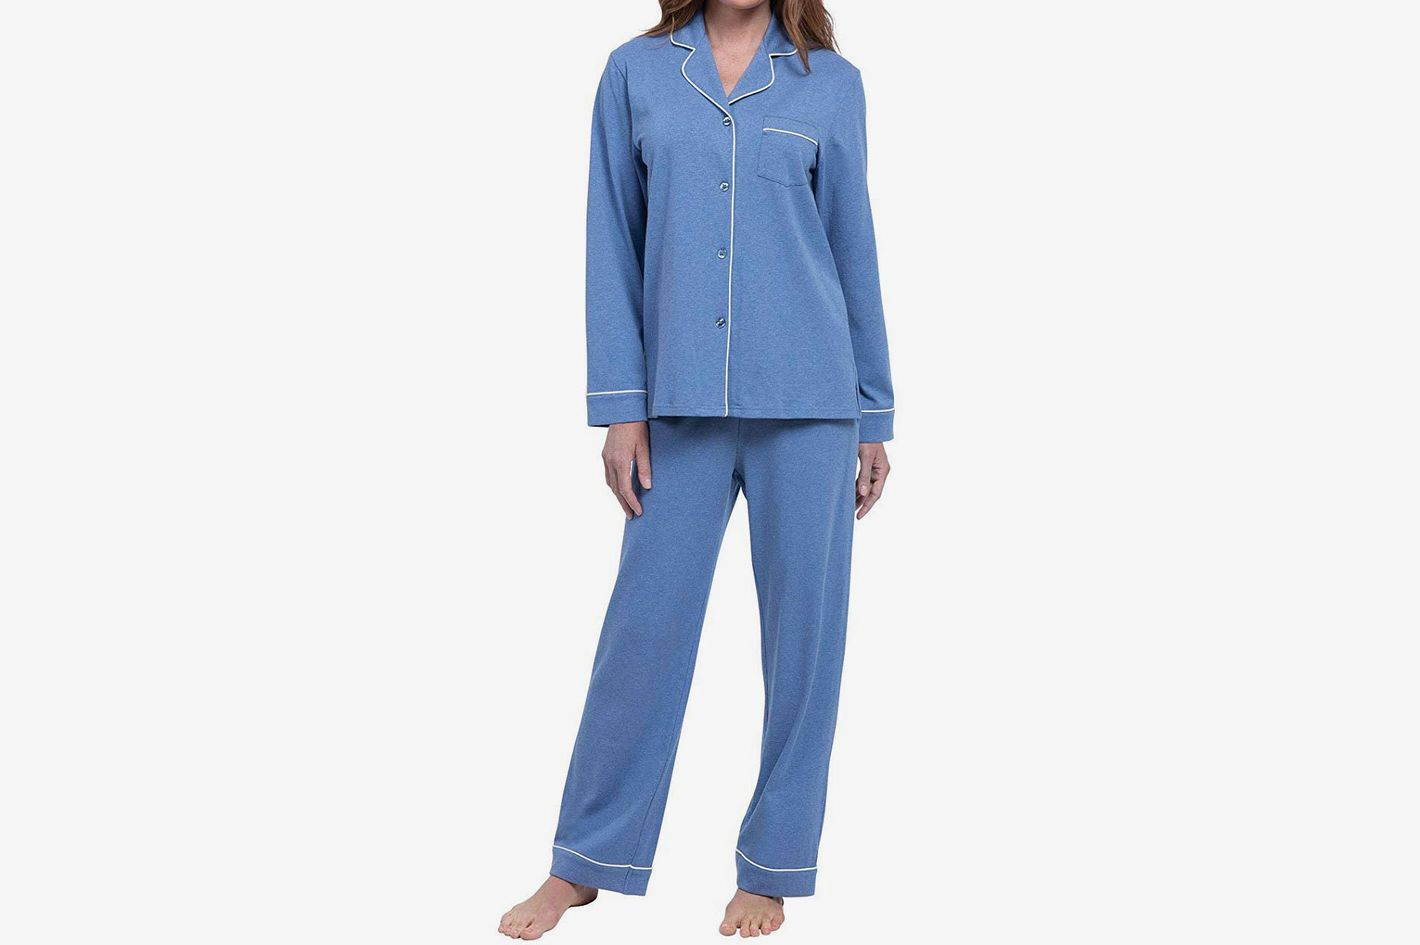 194b1cff13 PajamaGram Pajamas for Women - Cotton Jersey Womens Pajamas